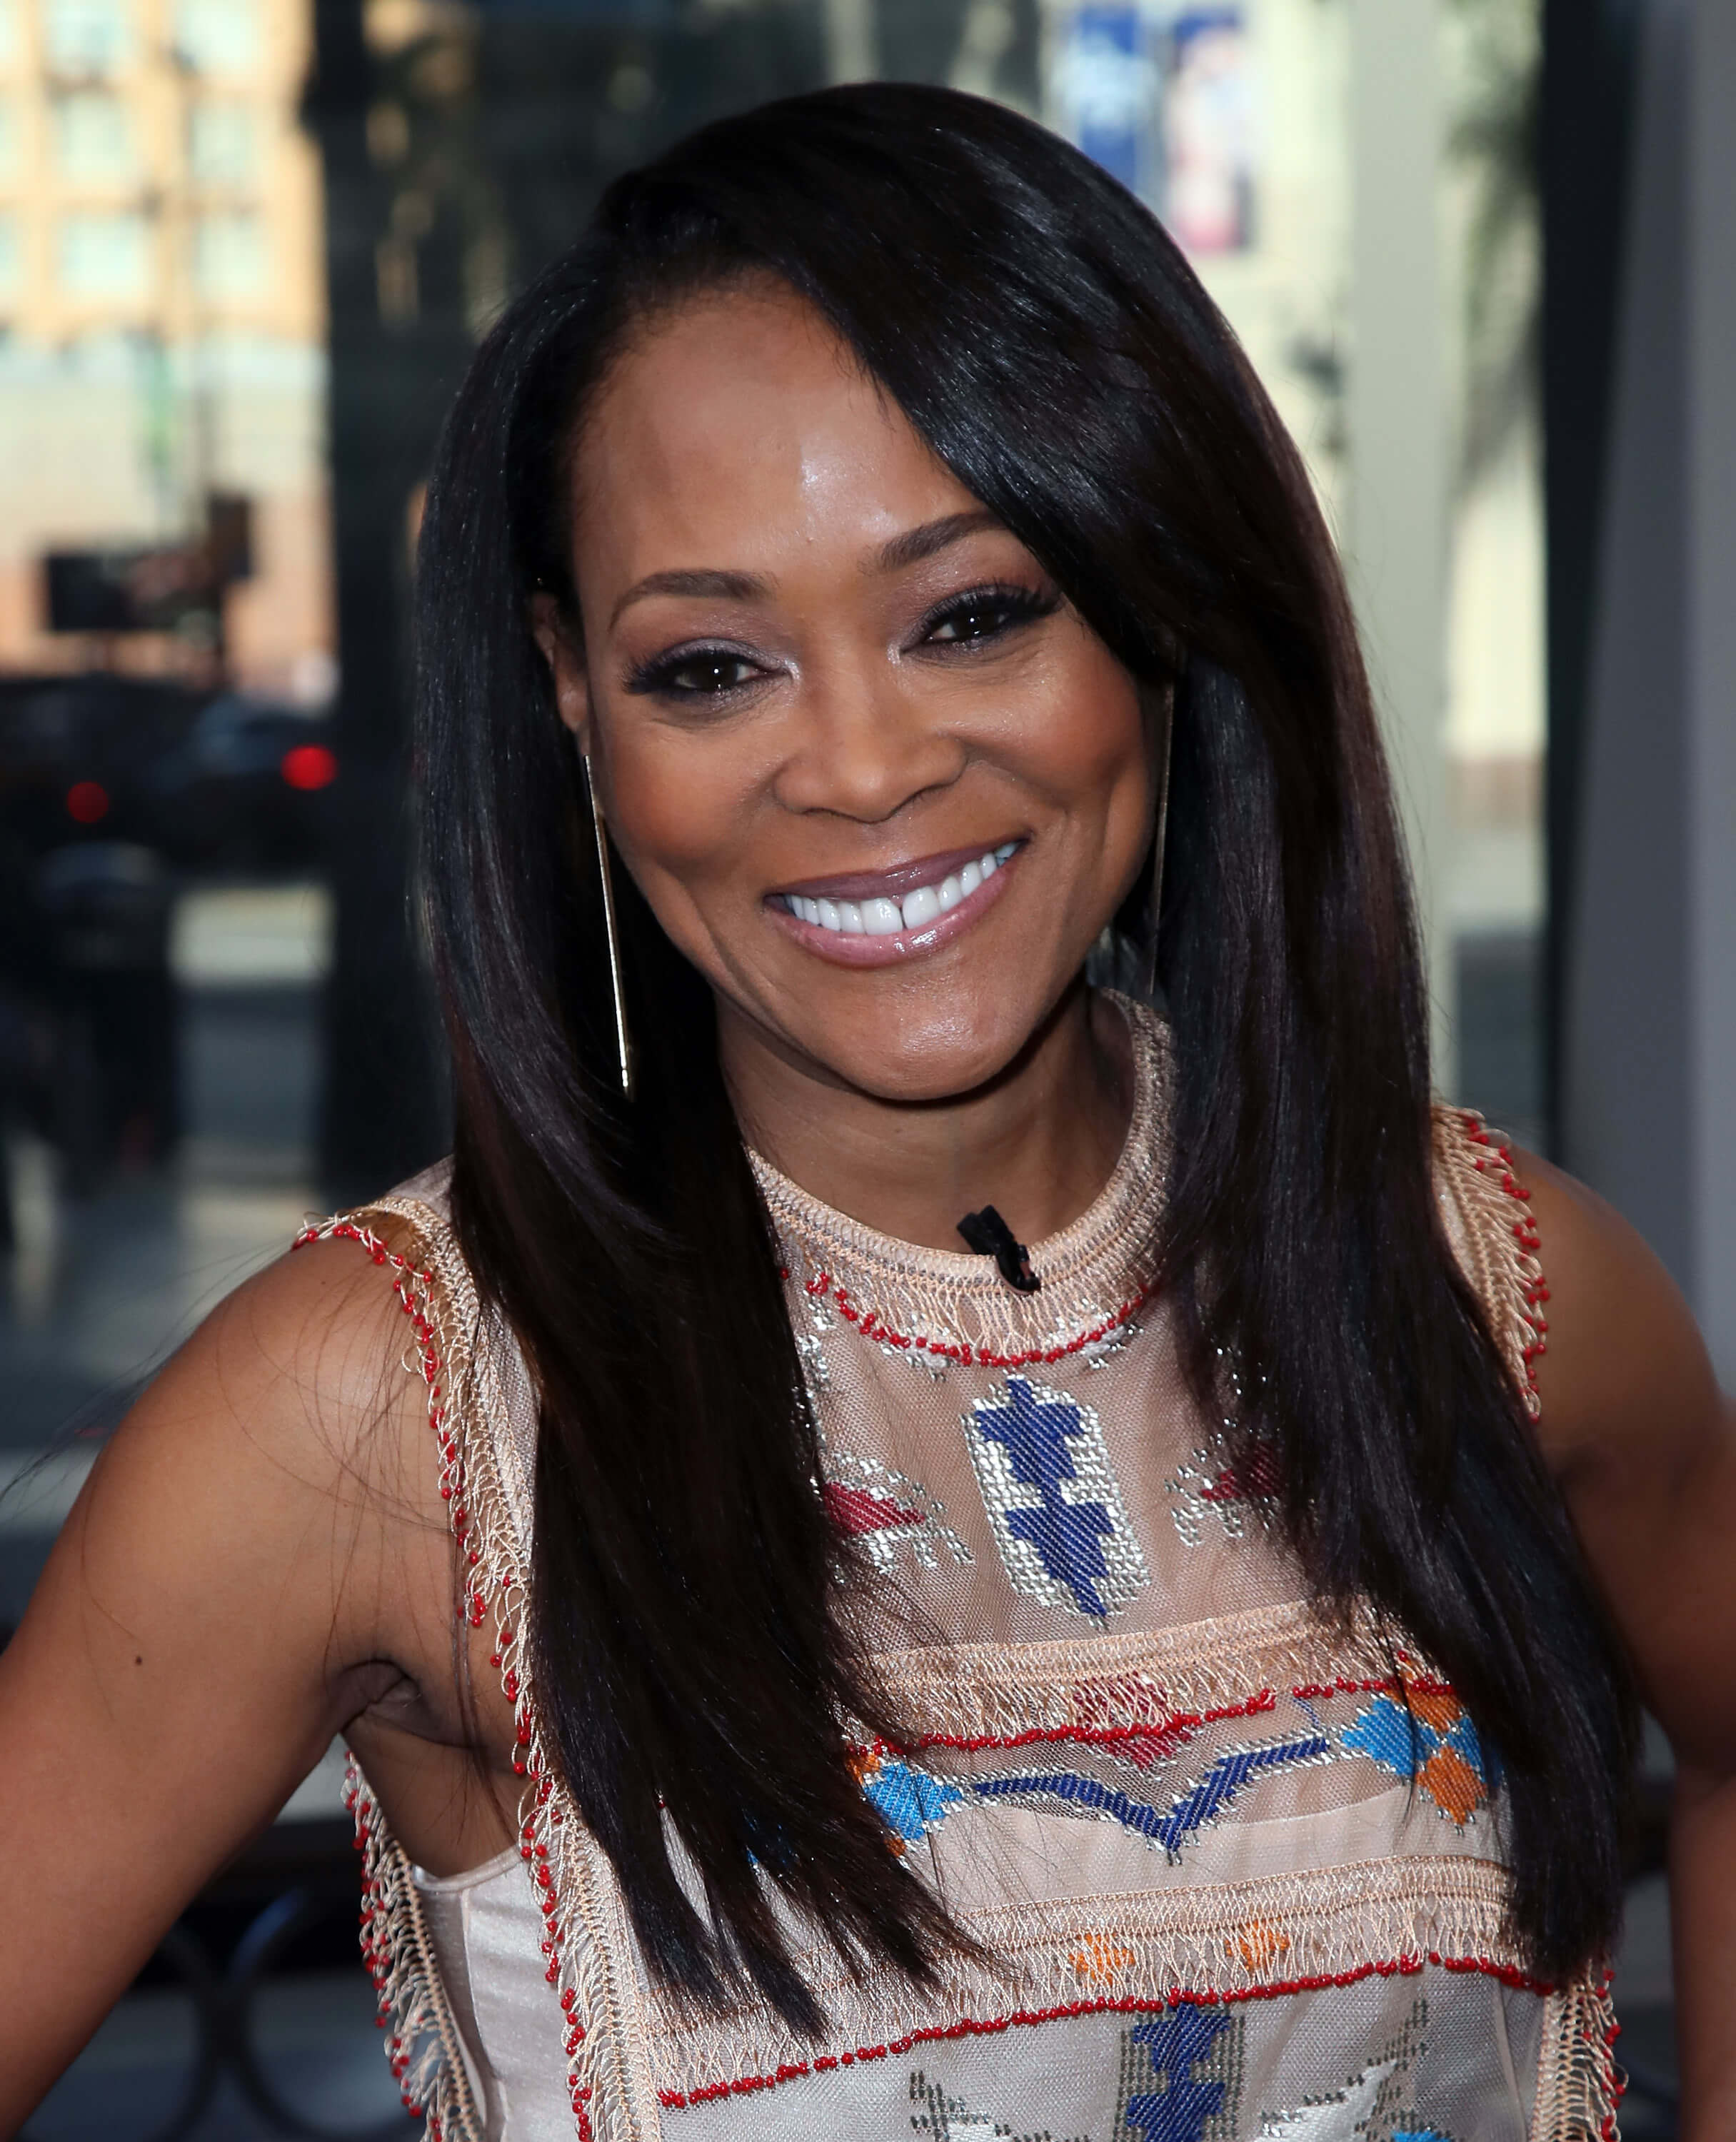 Robin Givens awesome smile